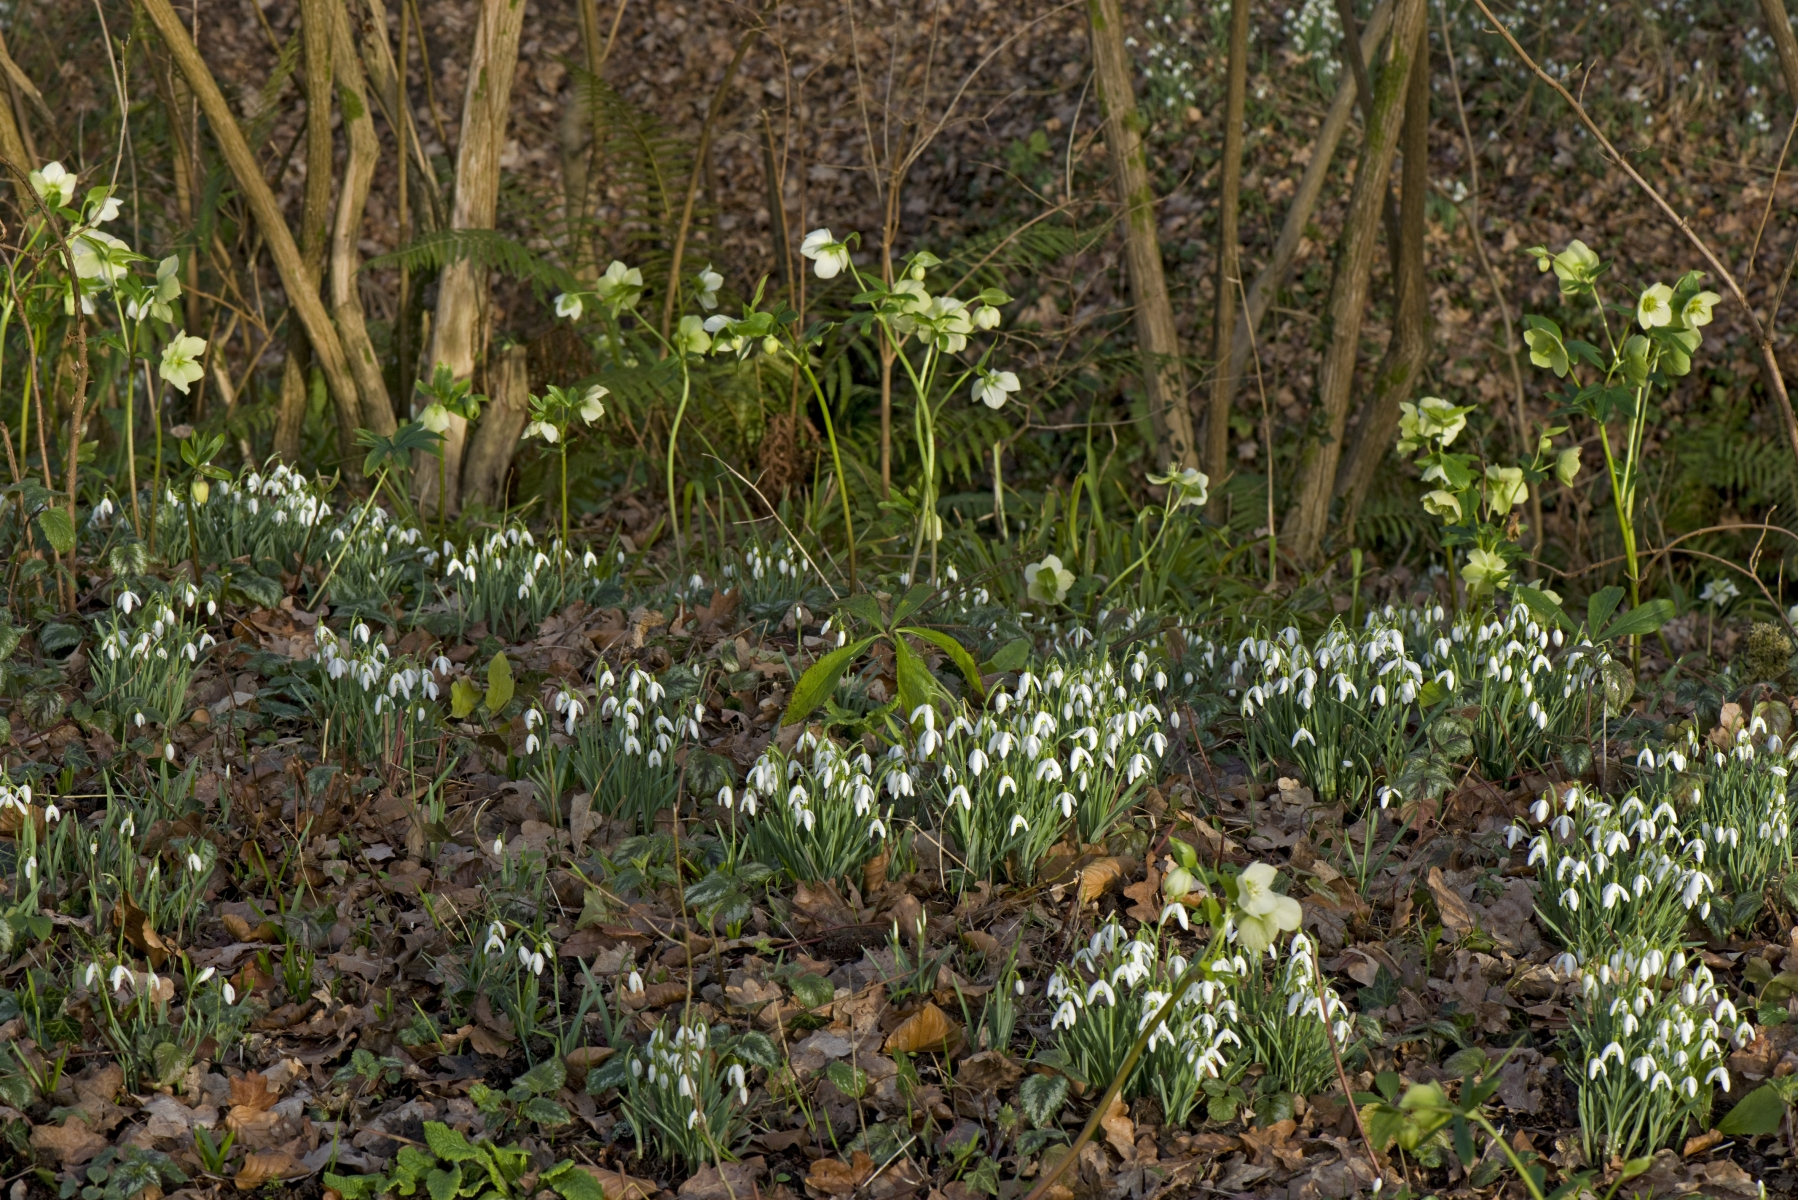 Snowdrops and white helleborus in the White Garden at Vann, Surrey in mid-February